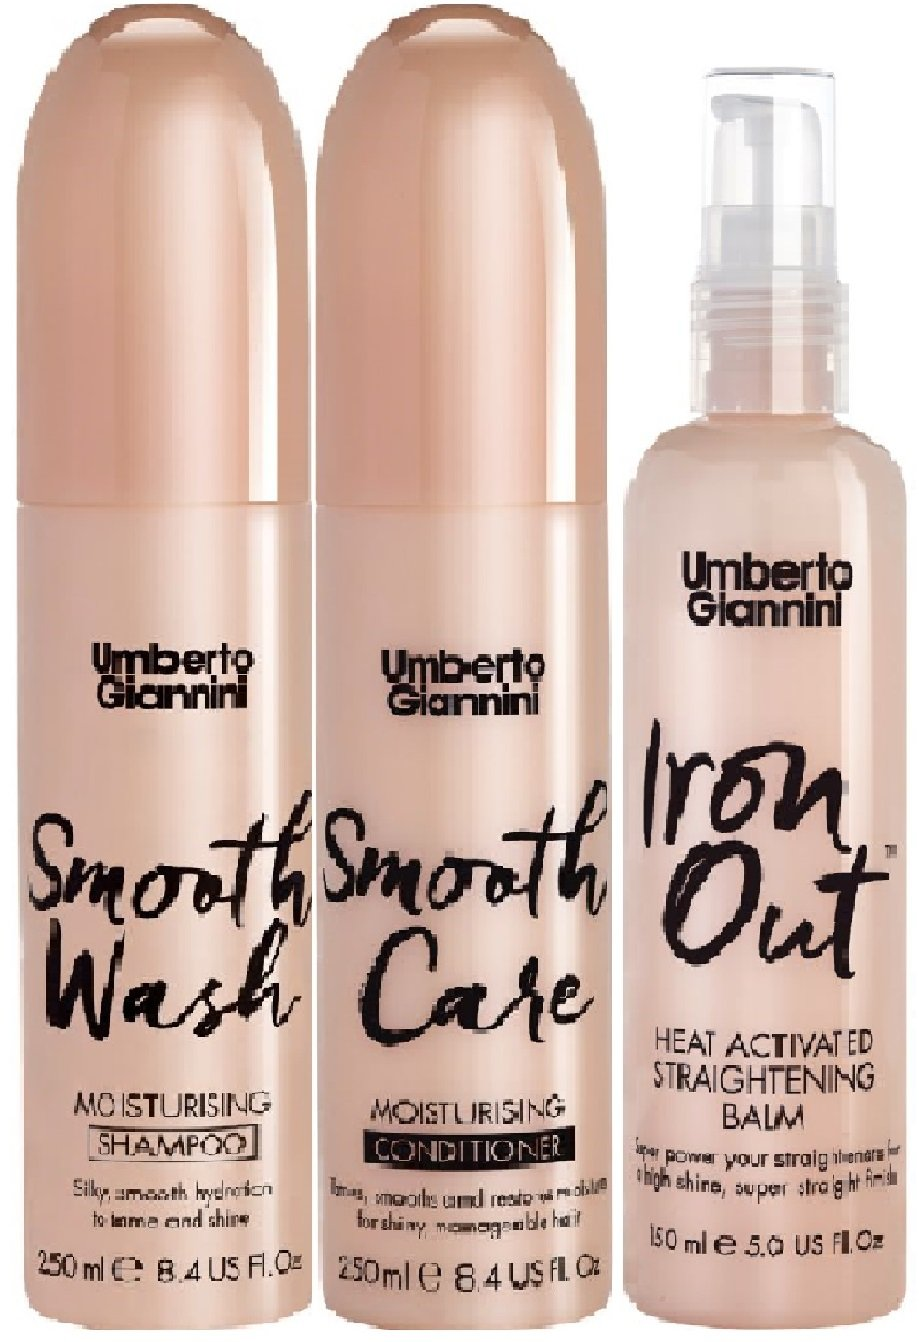 (3 PACK) Umberto Giannini Smooth Wash Moisturising Shampoo x 250ml & Umberto Giannini Smooth Care Moisturising Conditioner x 250ml Umberto Giannini Iron Out Heat Activated Straightening Balm x 150ml